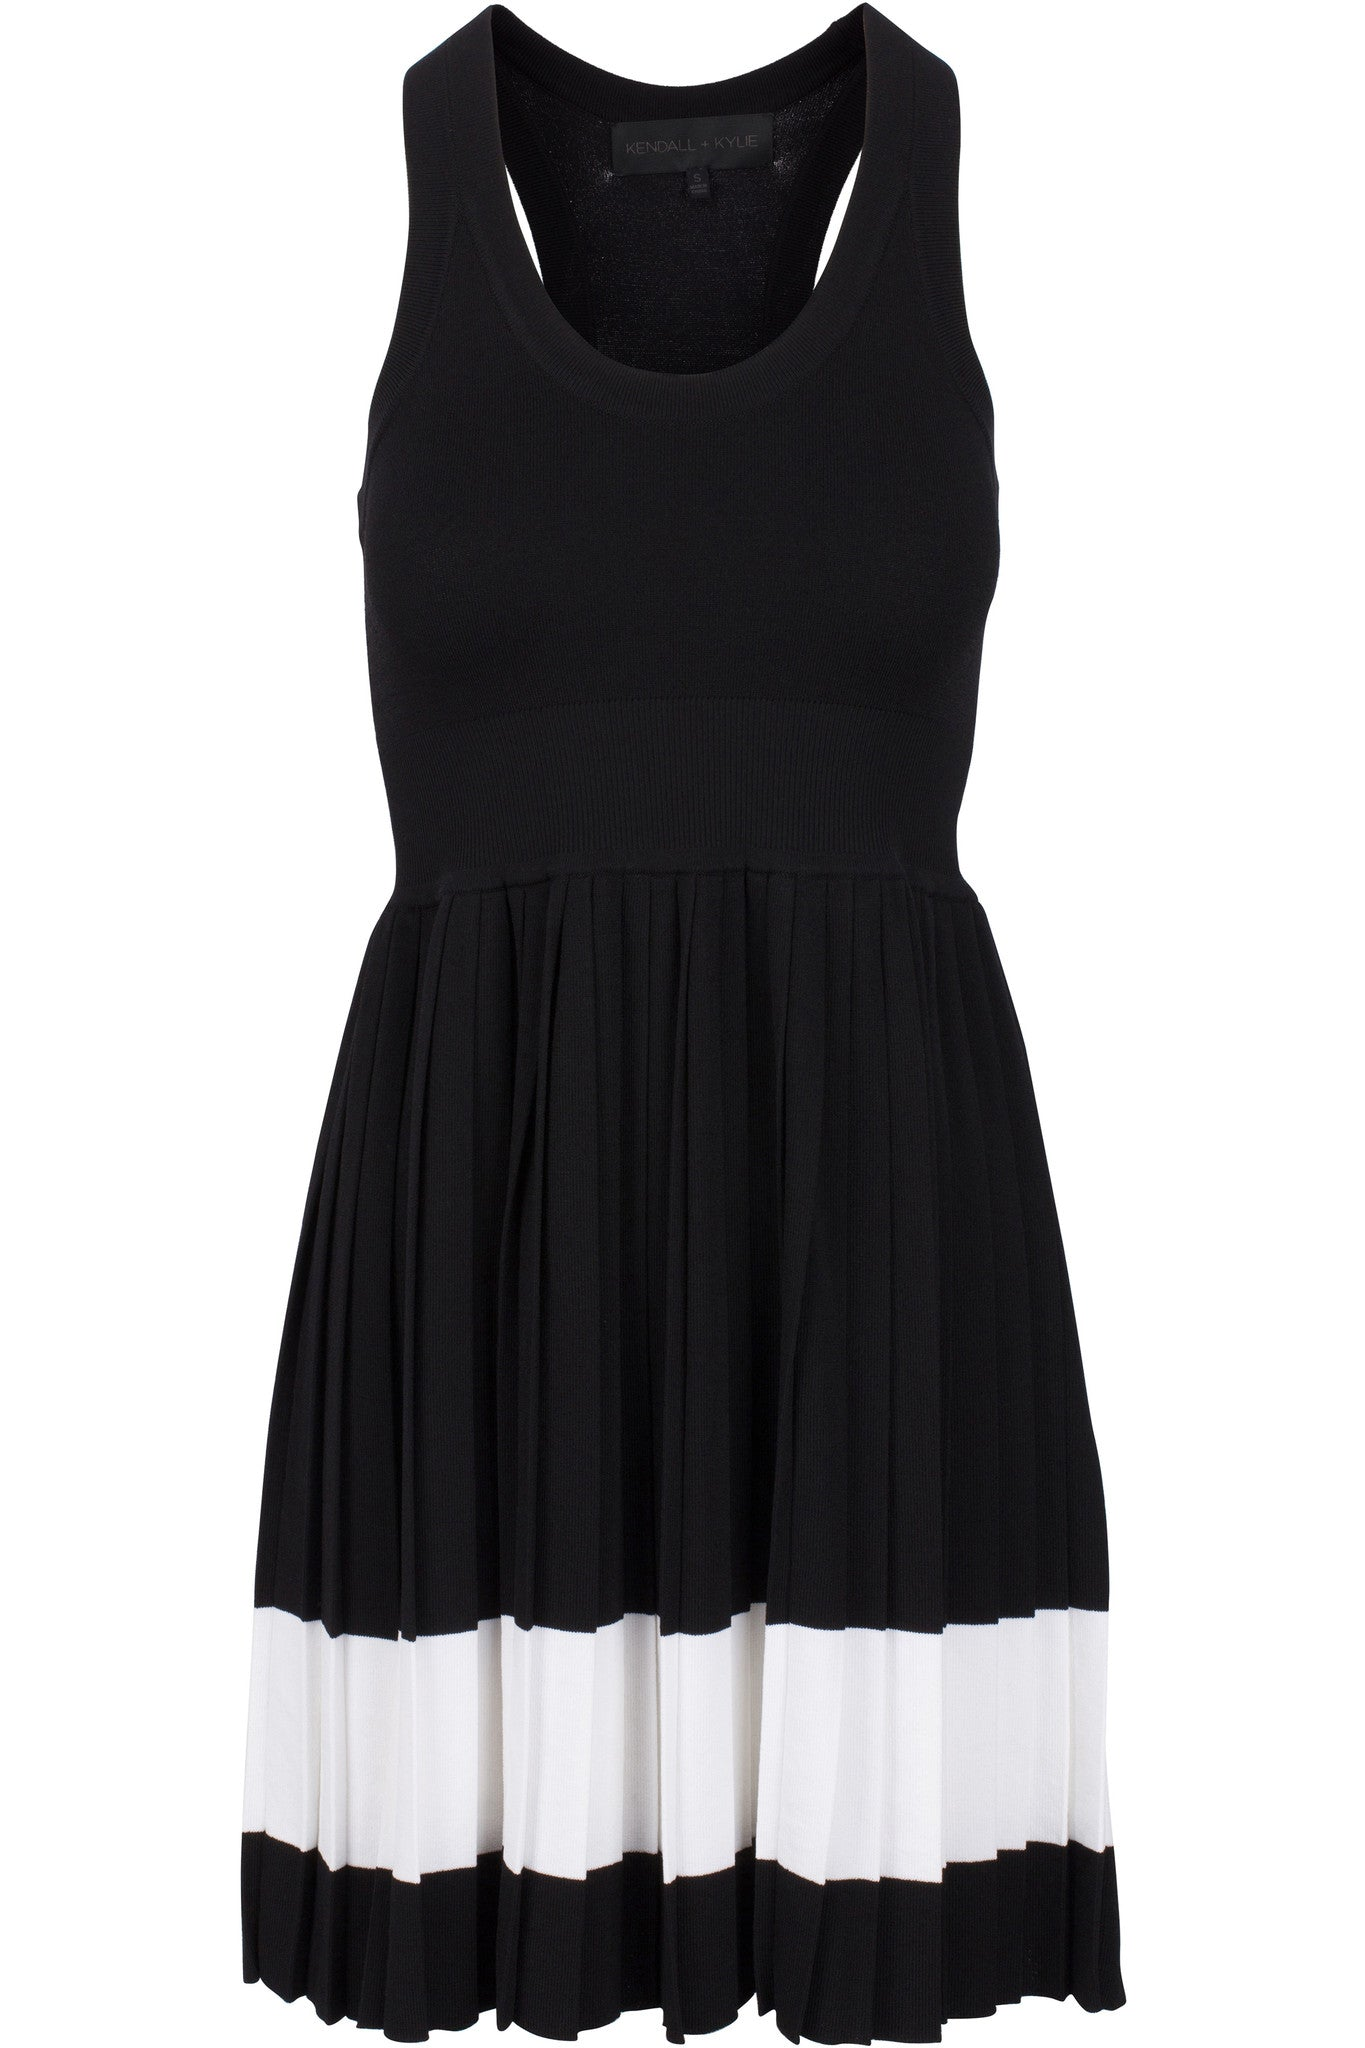 RACER BACK PLEATED DRESS DRESSES by KENDALL + KYLIE